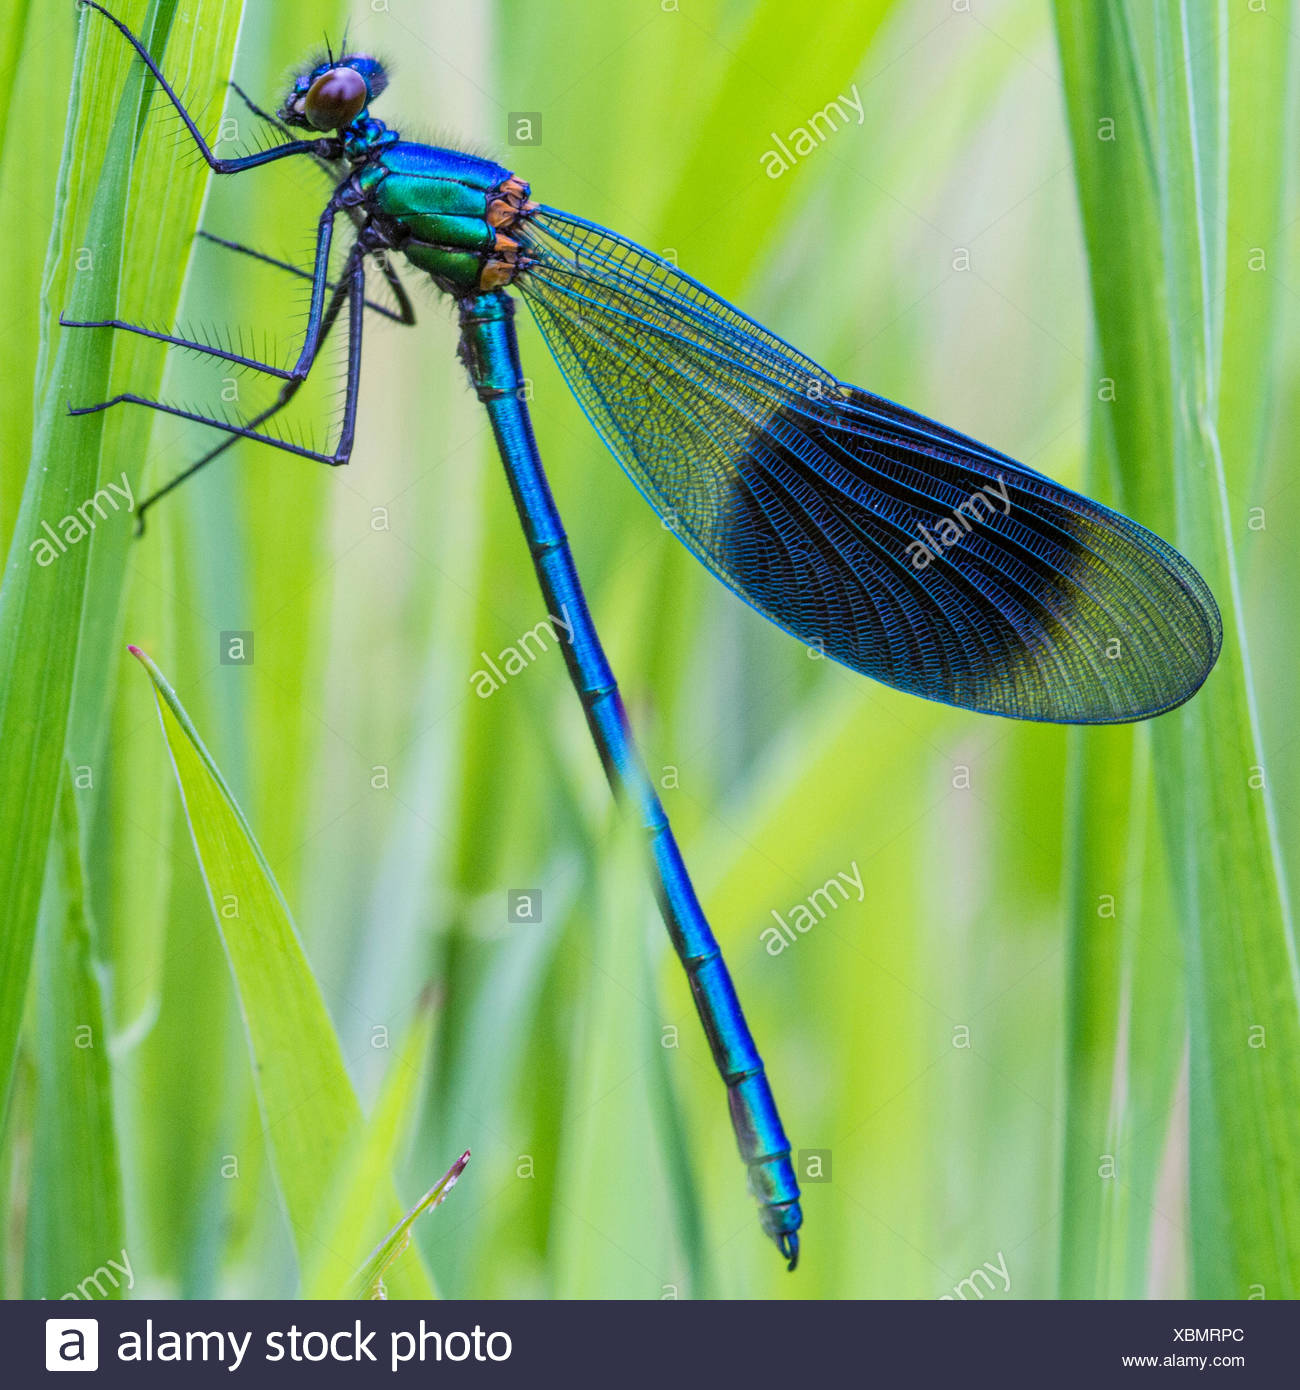 Close-up of dragonfly on blade of grass - Stock Image